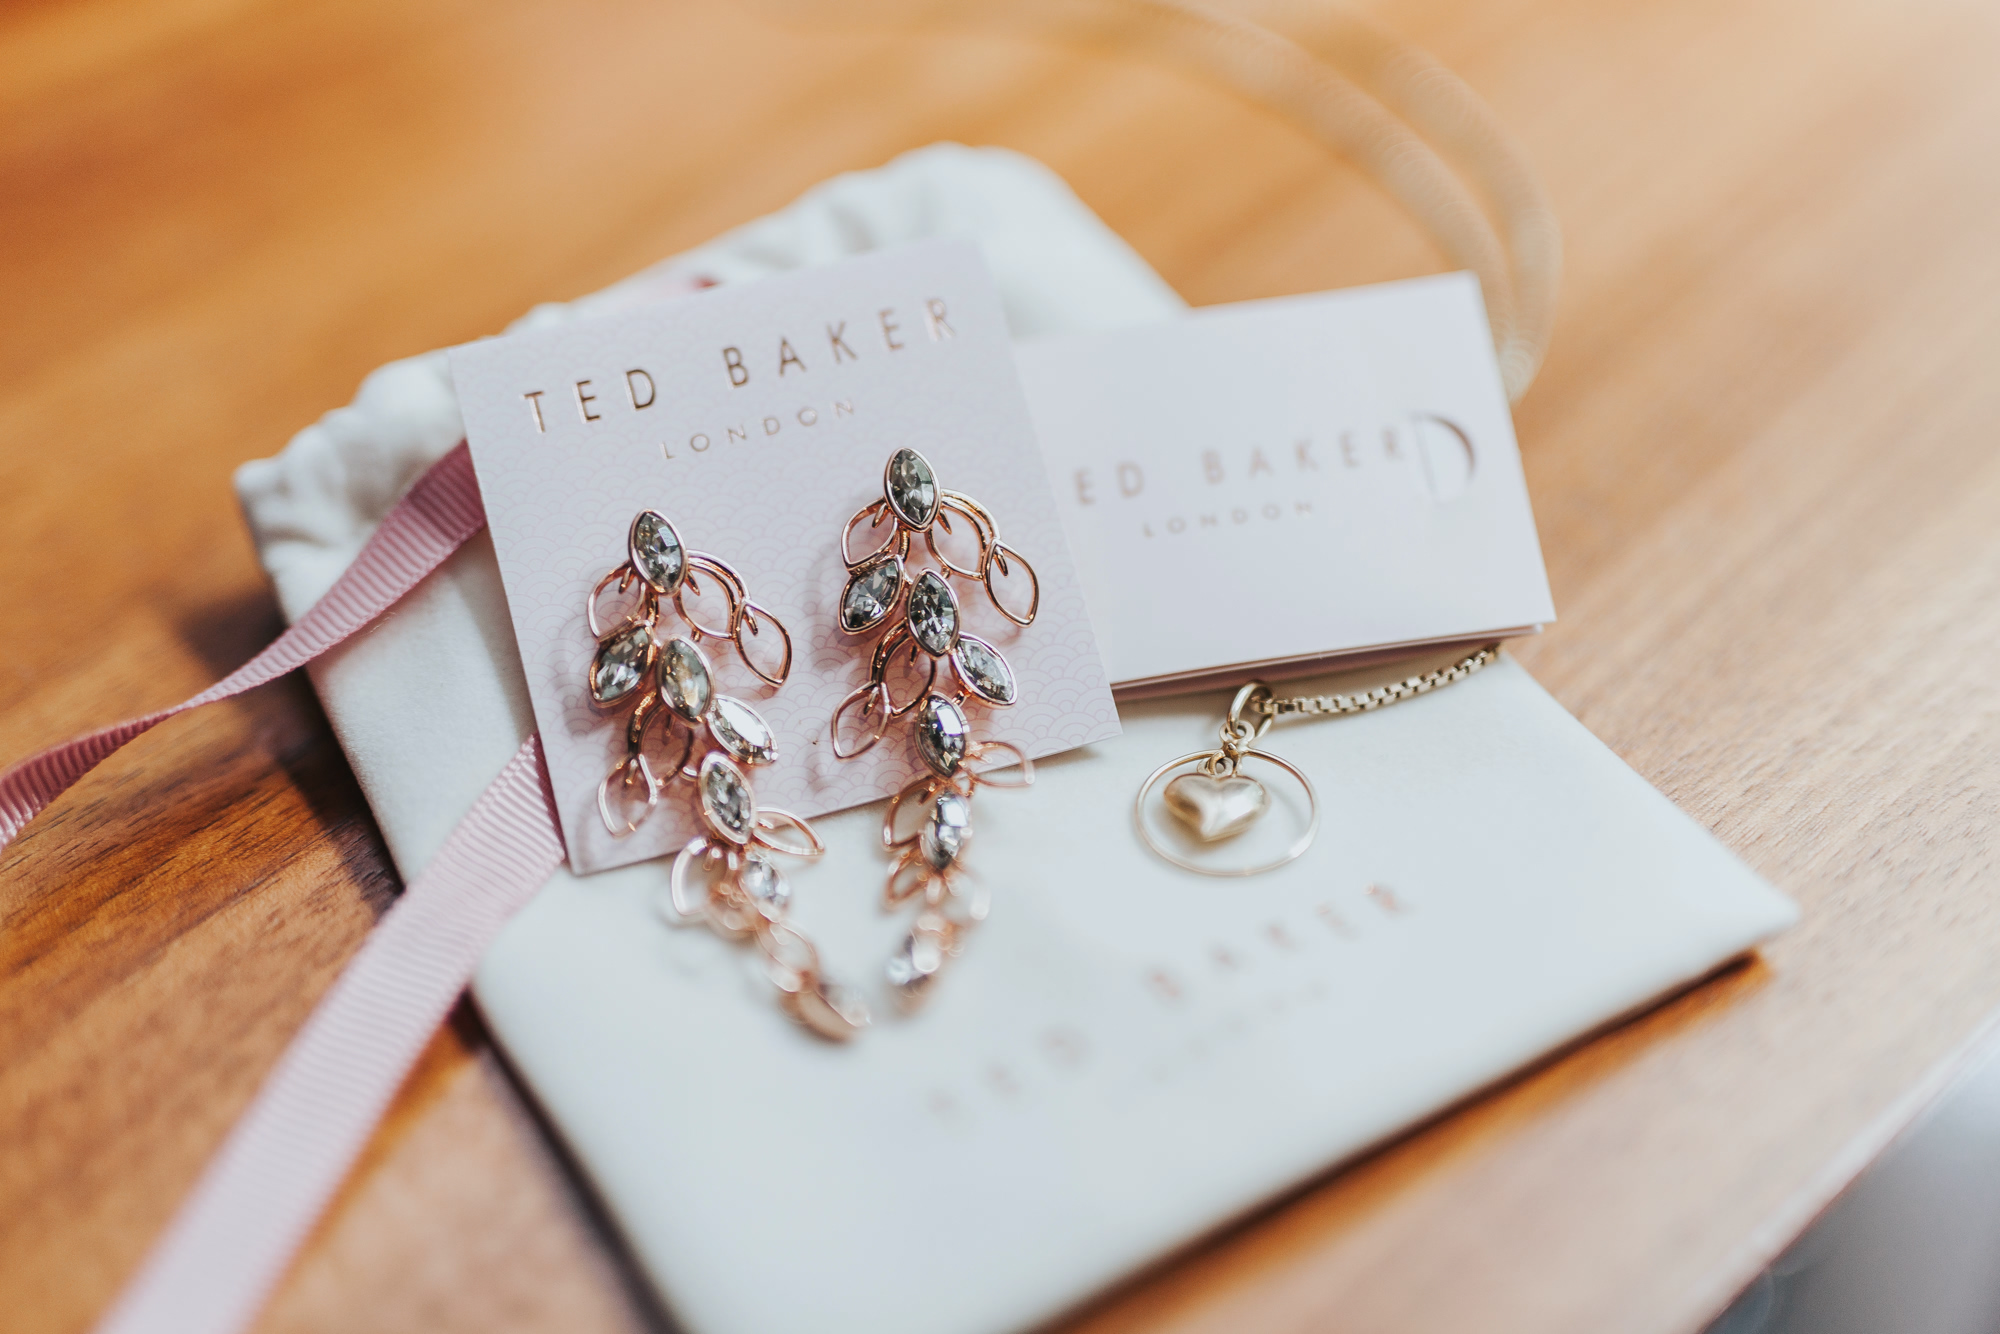 ted baker jewellery wedding